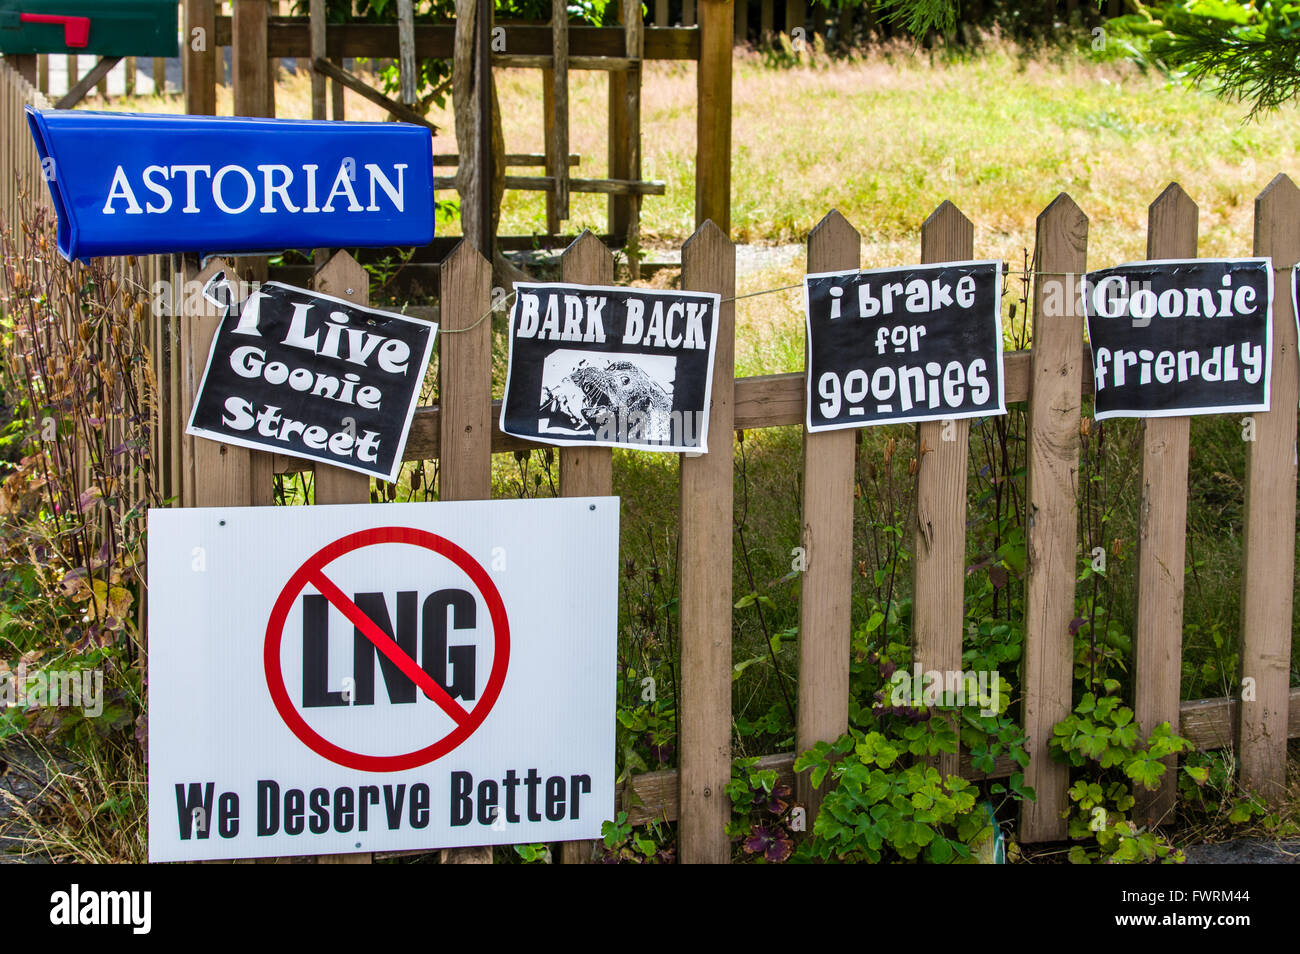 Signs Near The Goonies House In Astoria, Oregon. Parking And Crowds Have  Become A Problem During The 30th Anniversary Of The Movie.